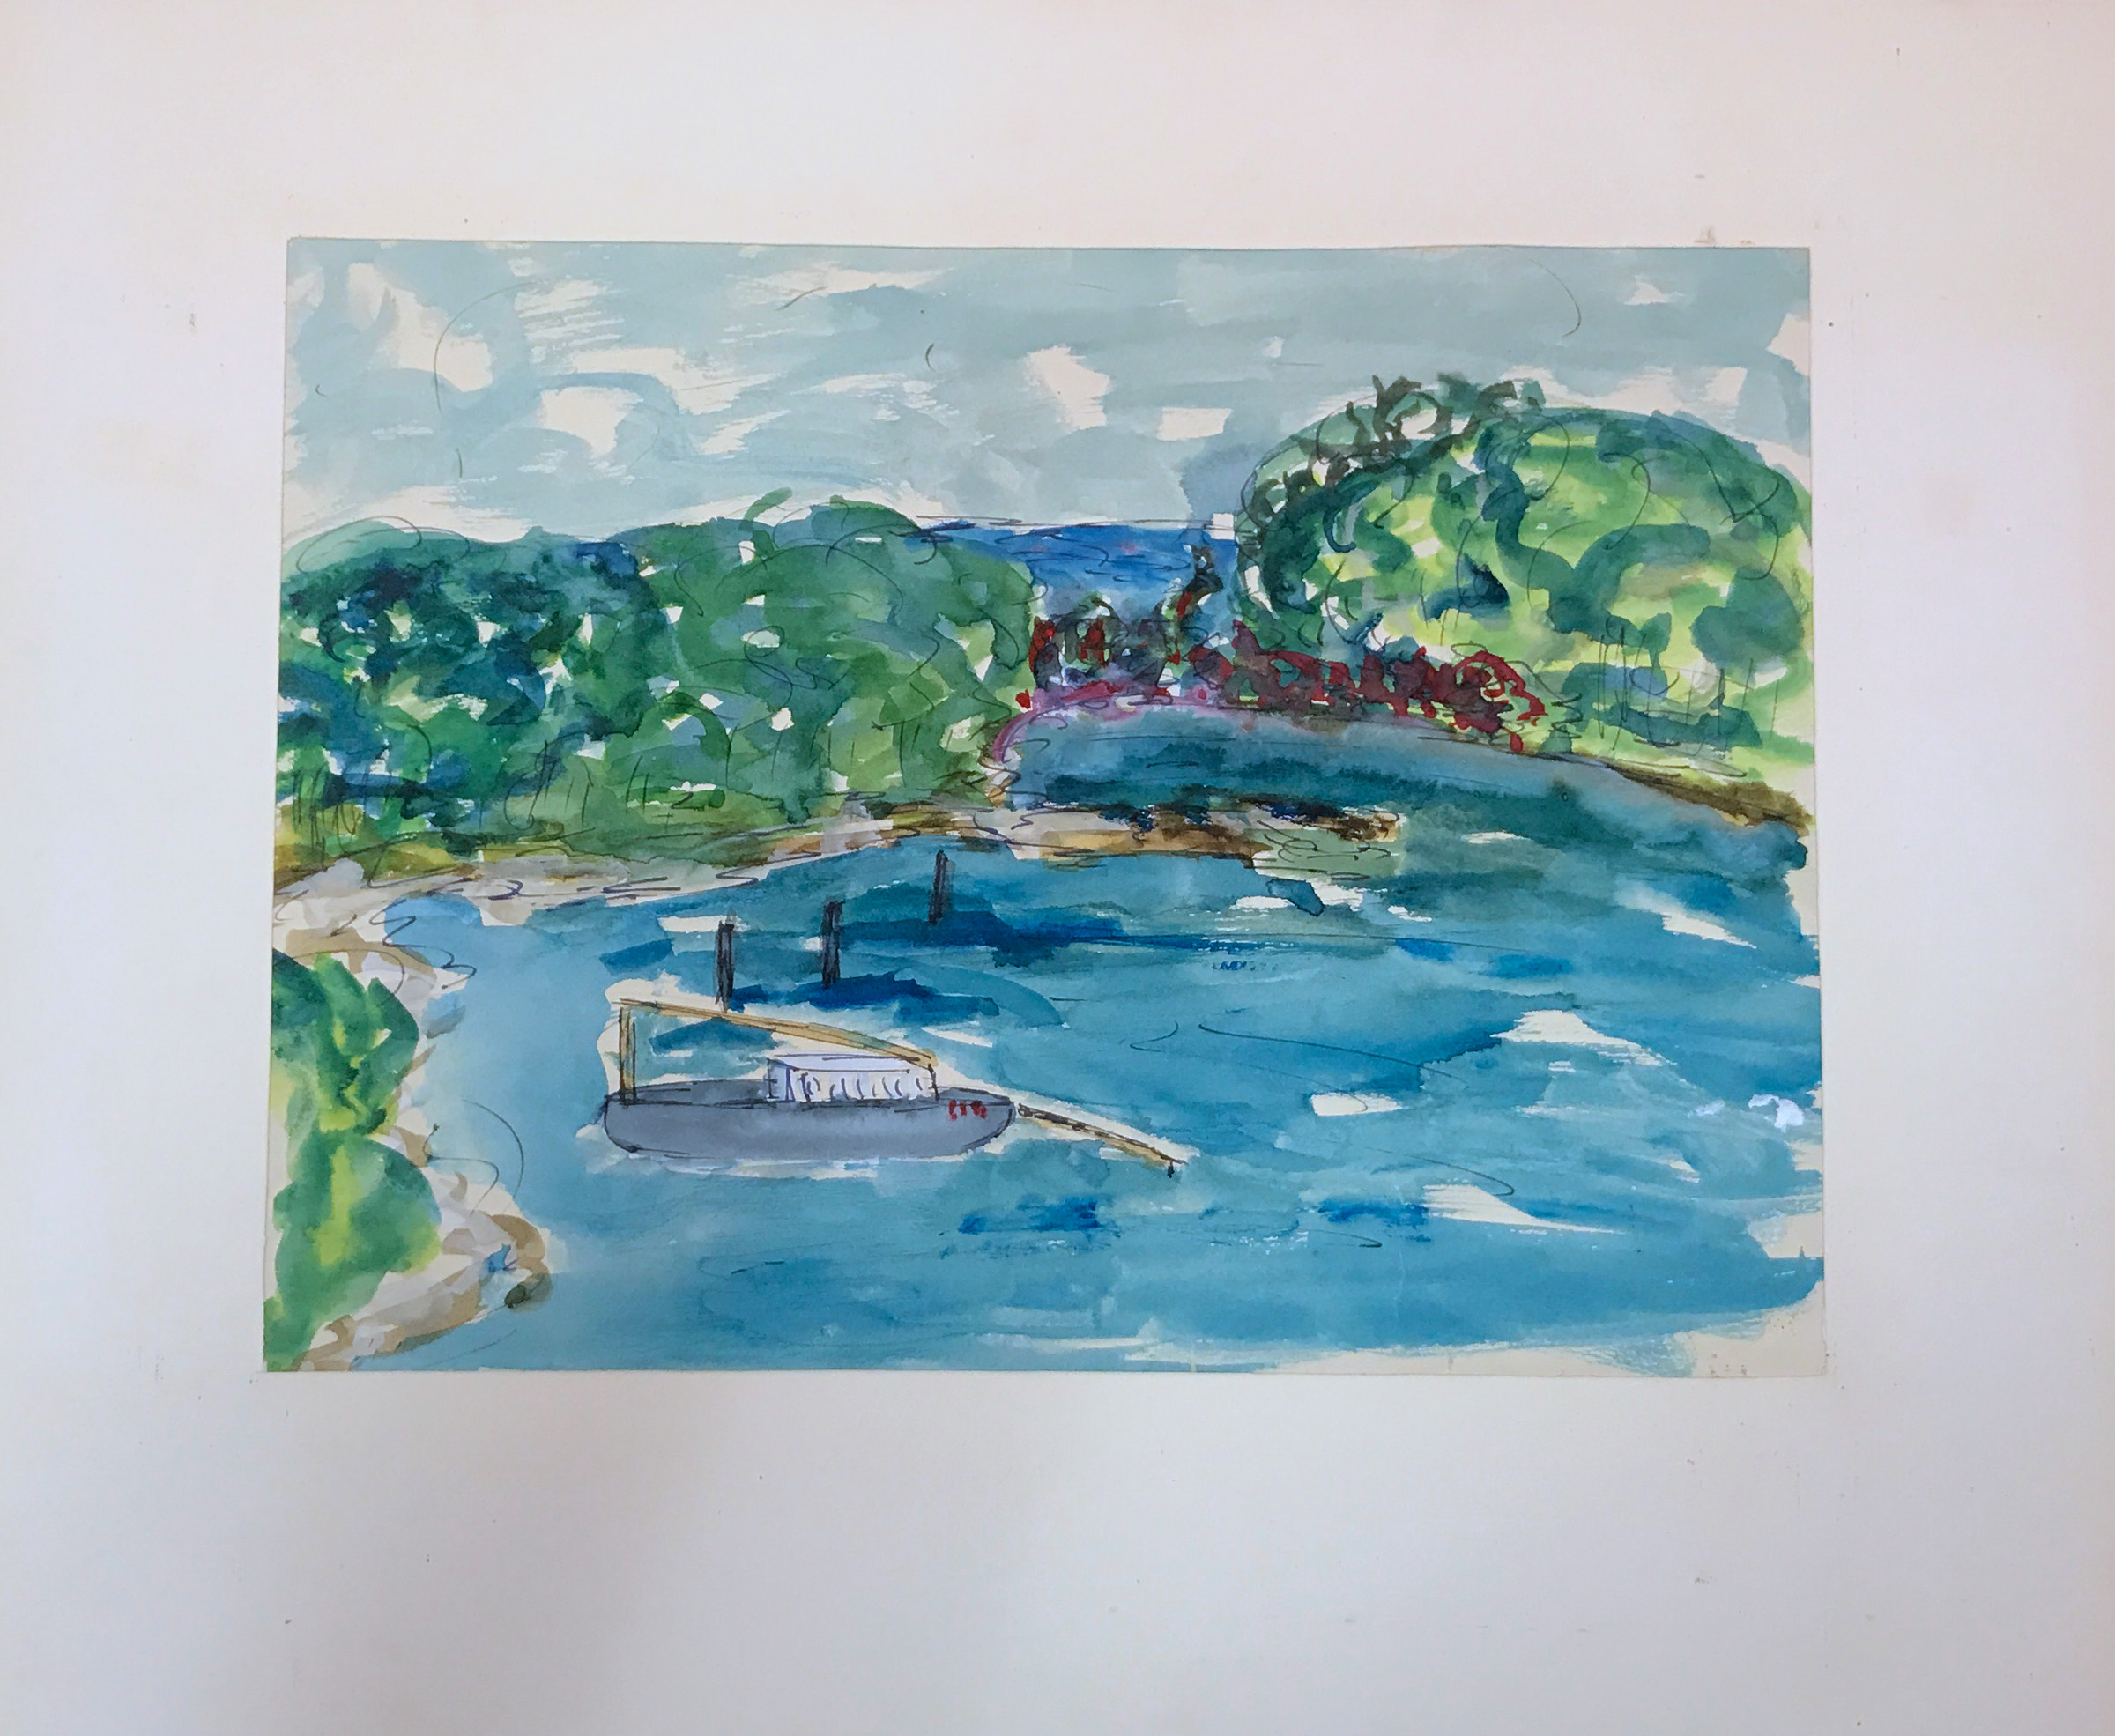 Landscape painting of a waterway with trees, shoreline, and a gray boat.